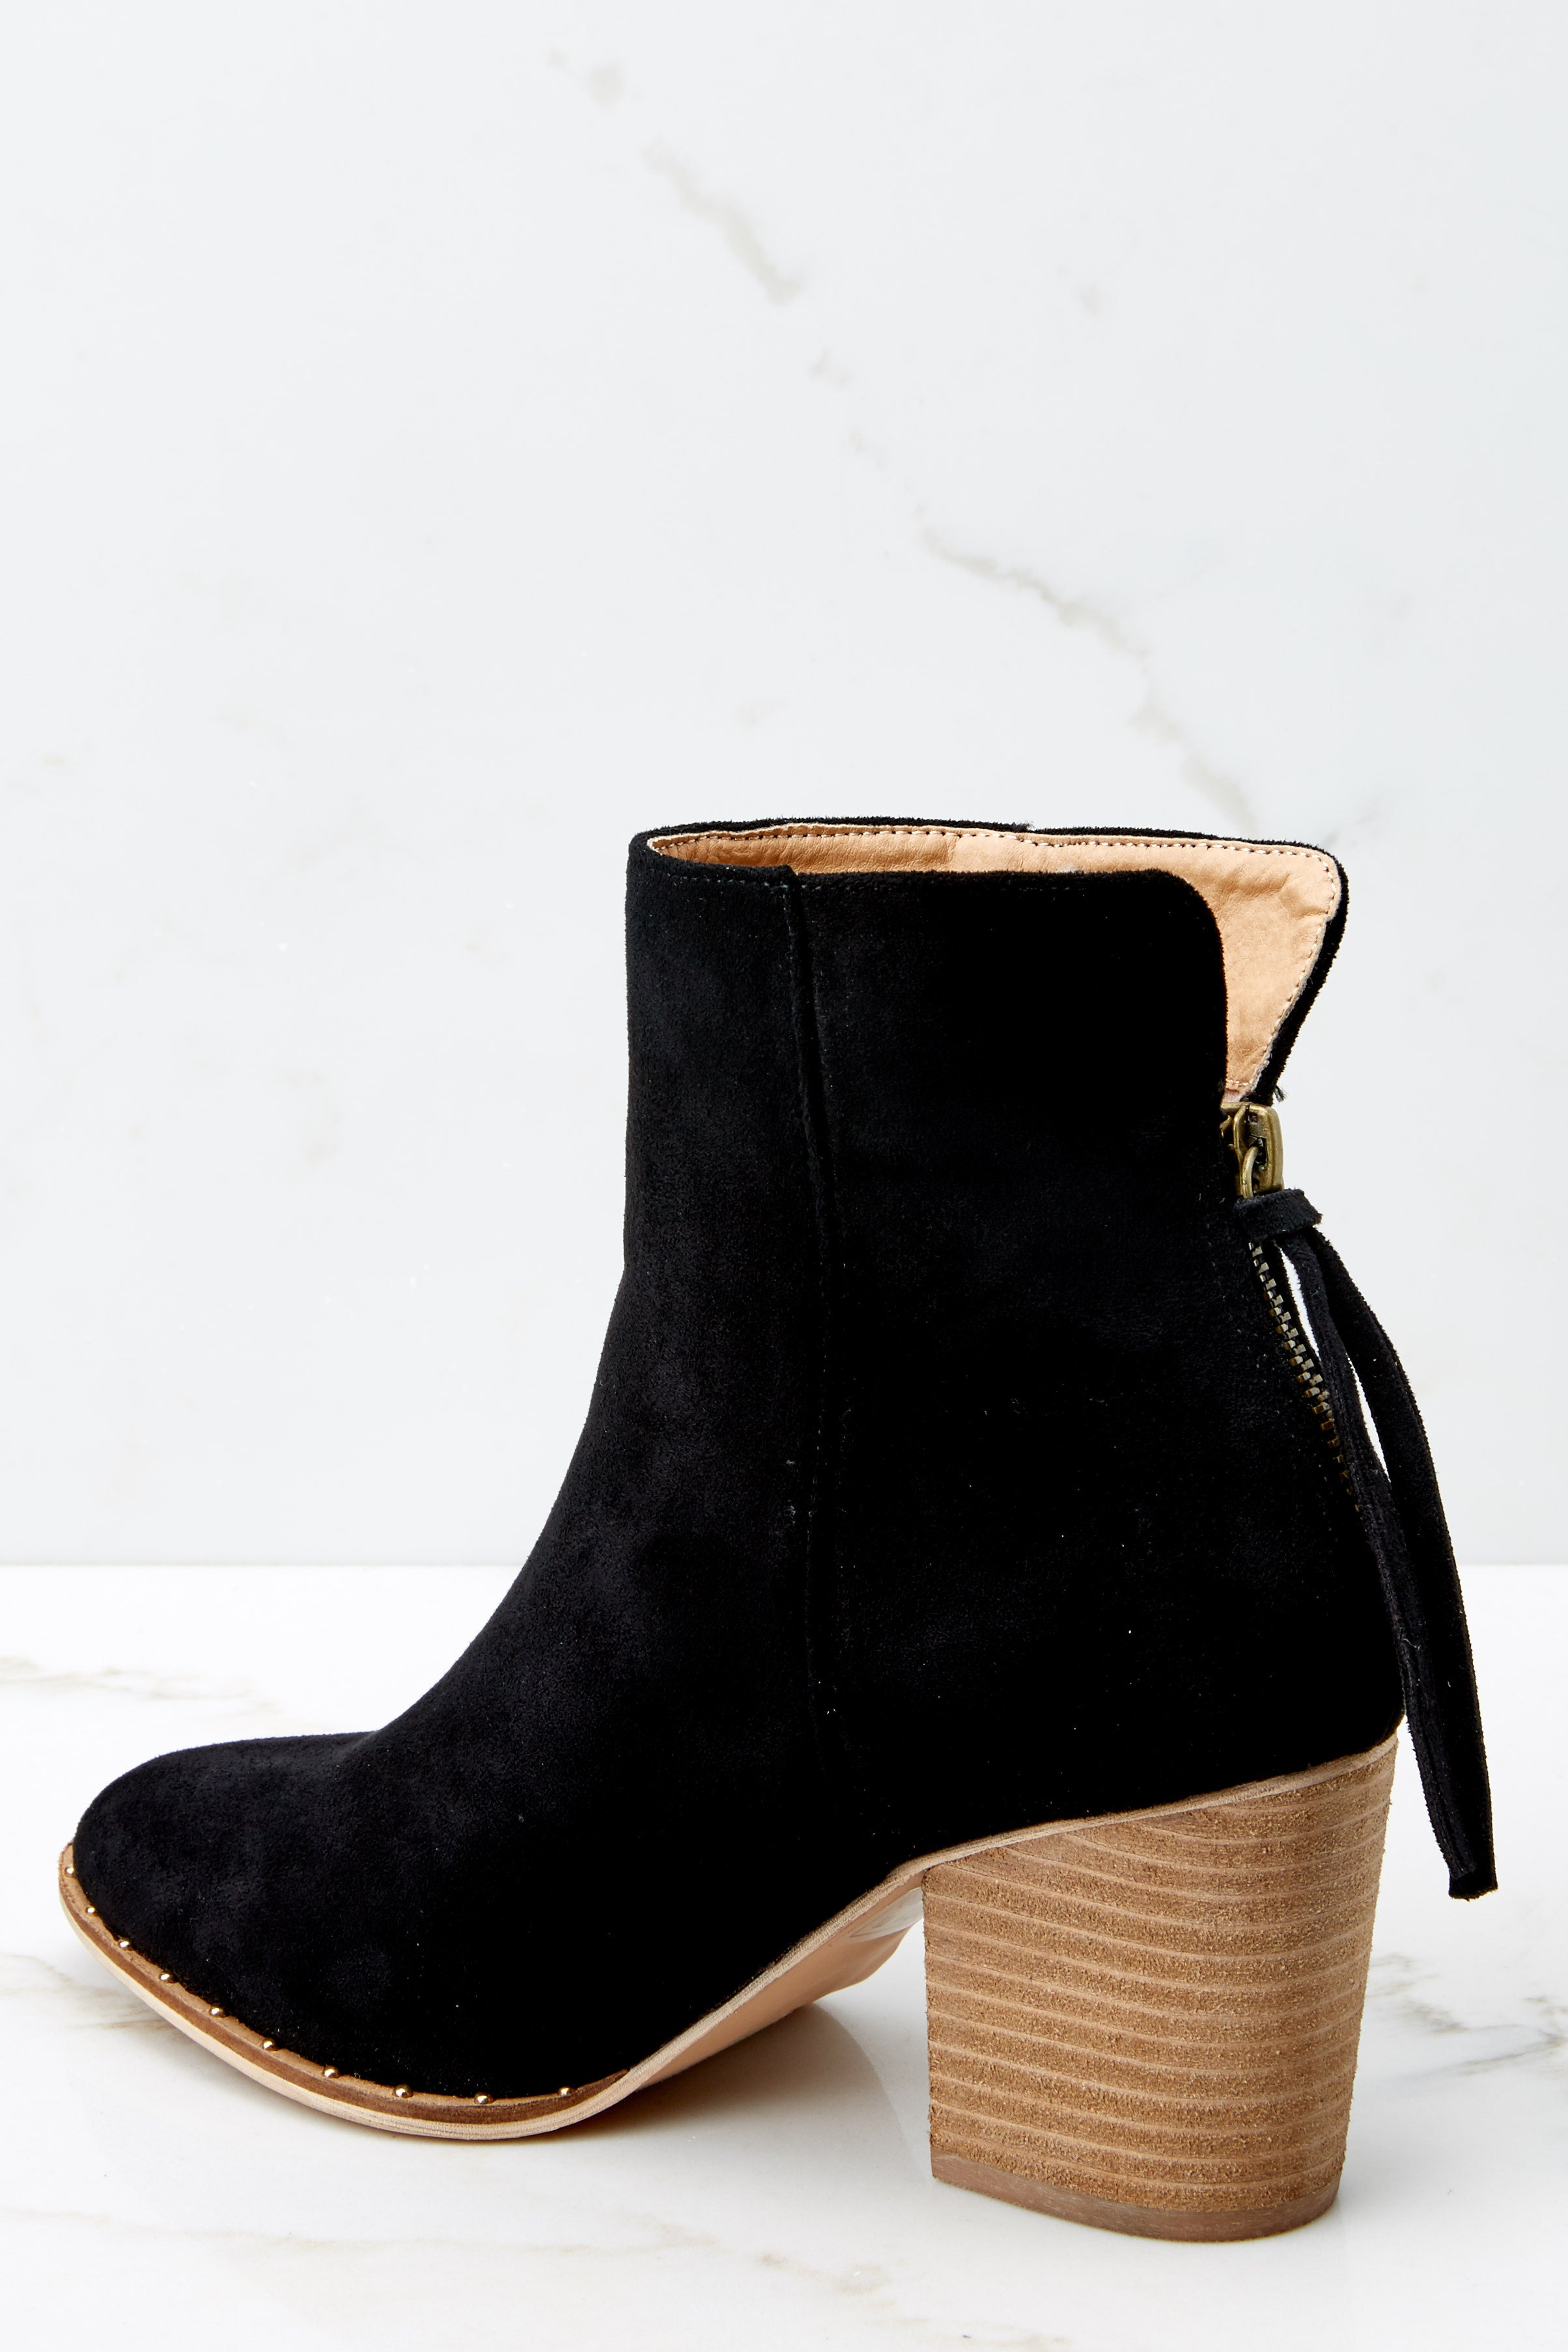 4 Taking These with Me Black High Heel Ankle Boots at reddressboutique.com